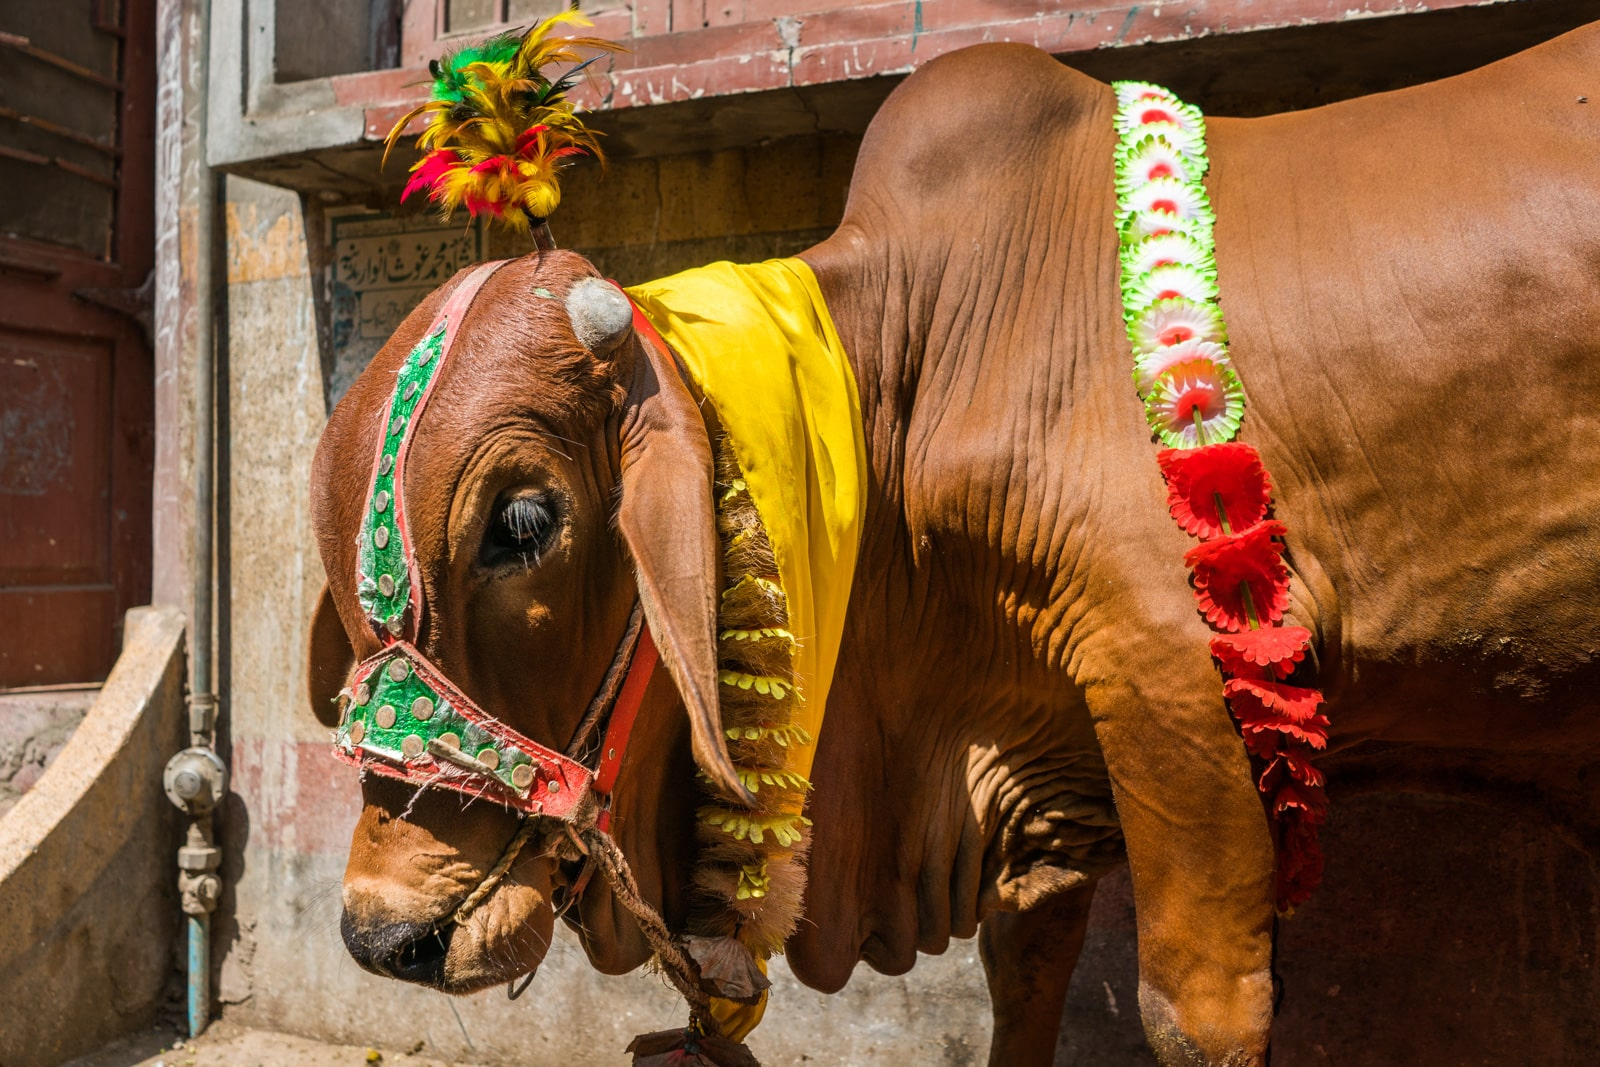 Celebrating Eid al-Adha in Lahore, Pakistan - A cow in colorful decorations tied to the wall - Lost With Purpose travel blog